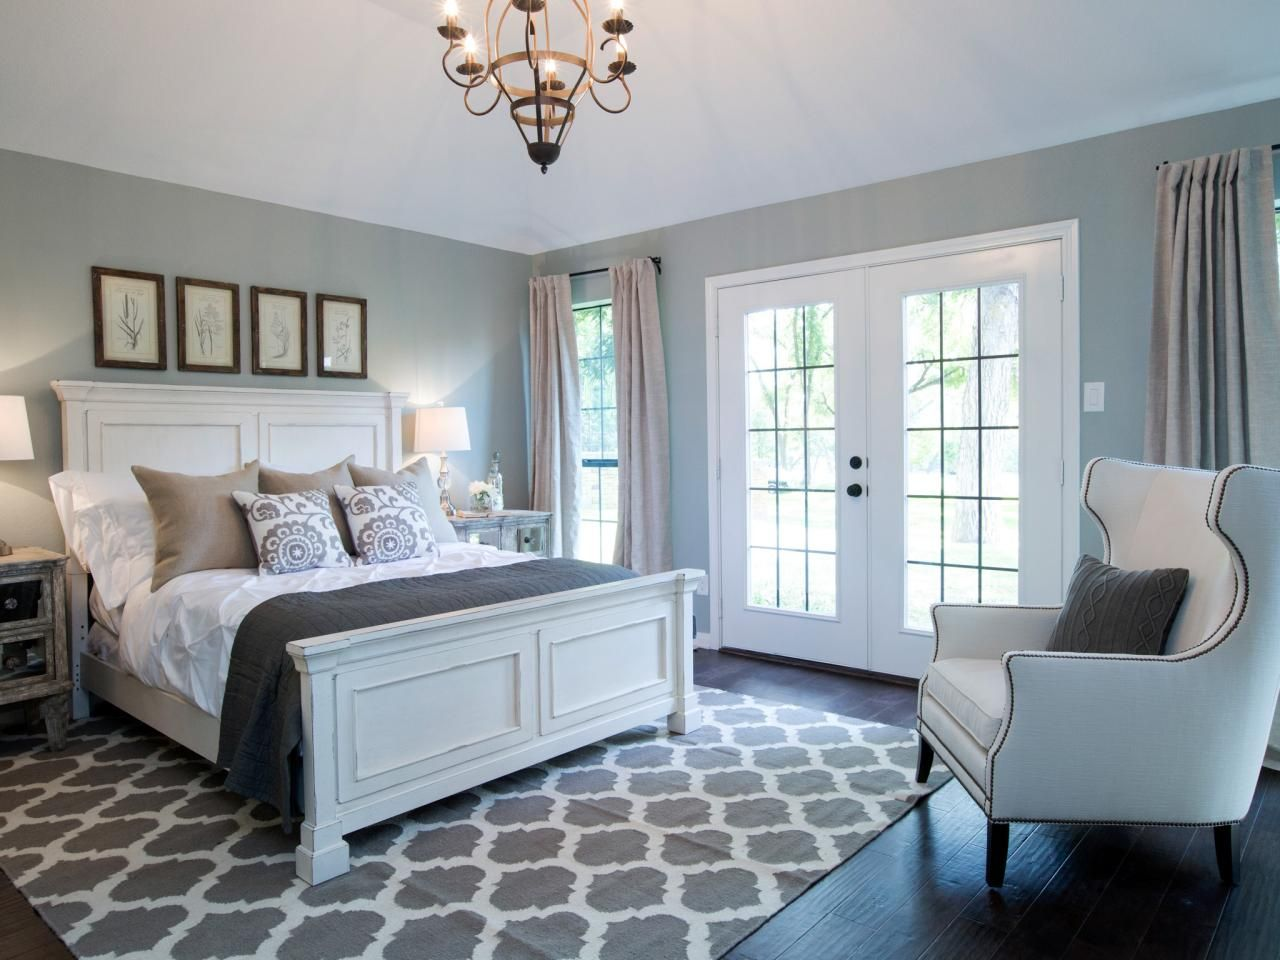 Incroyable Pretty And Relaxing Master Bedroom By Fixer Upper. Farmhouse But Not Too  Country #bedroomdecor